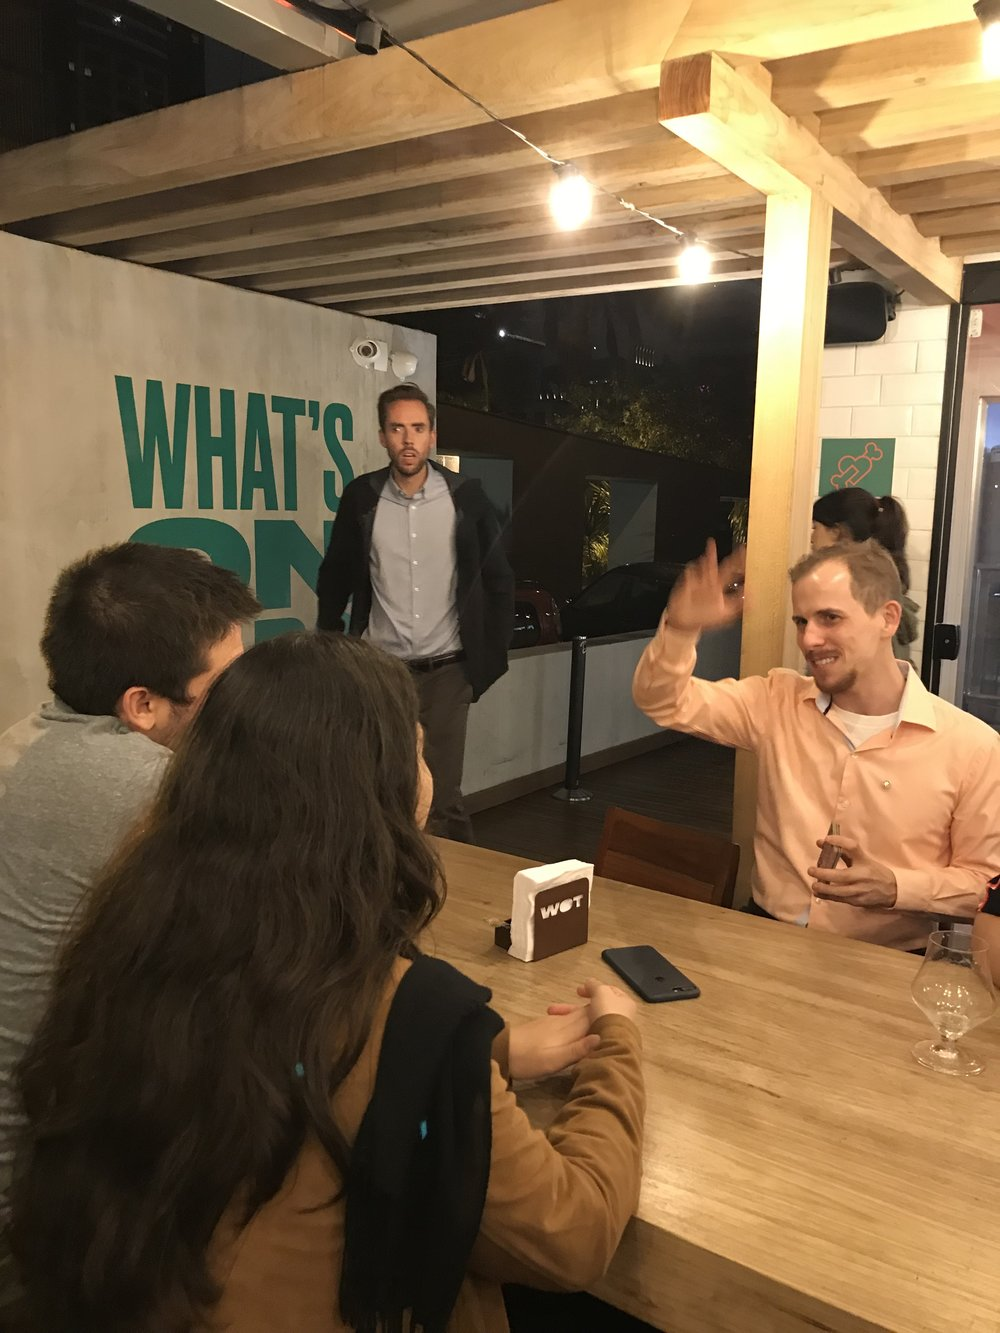 @ What's on Tap?